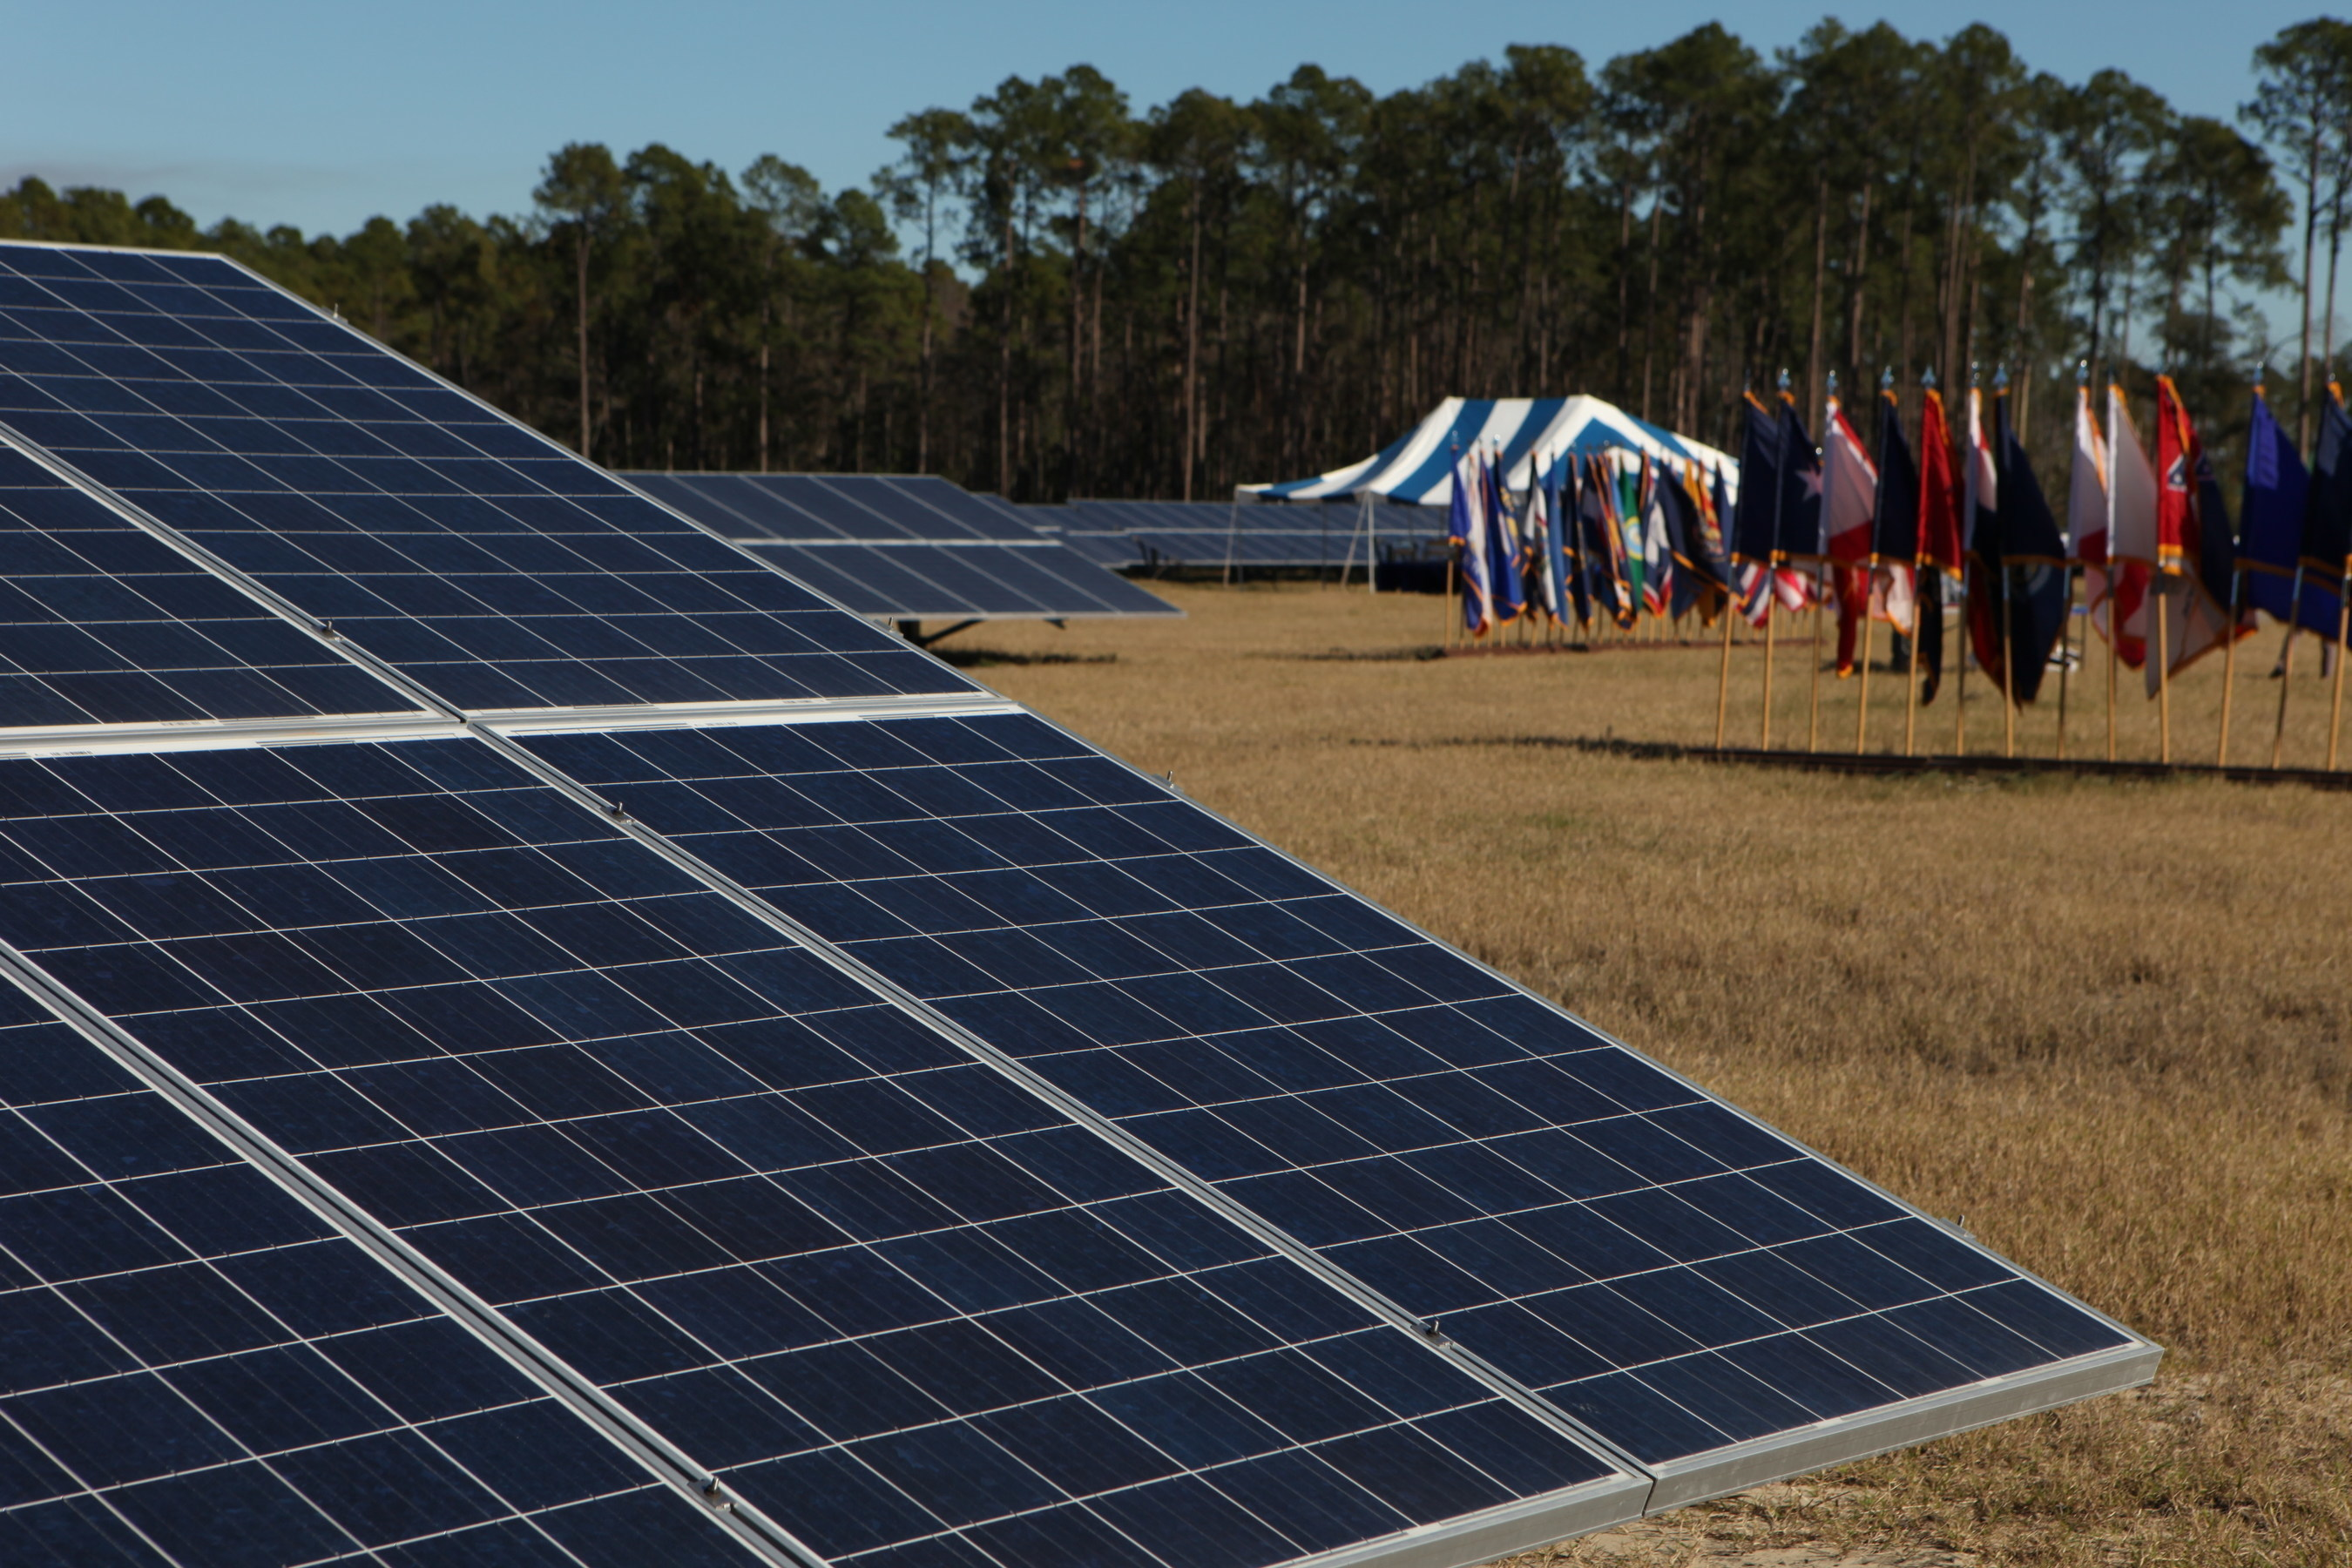 Including related transmission and distribution infrastructure, Georgia Power's solar project at Fort Stewart occupies 250 acres, utilizes approximately 139,200 ground-mounted photovoltaic (PV) panels and is estimated to represent a $75 million investment at the installation.